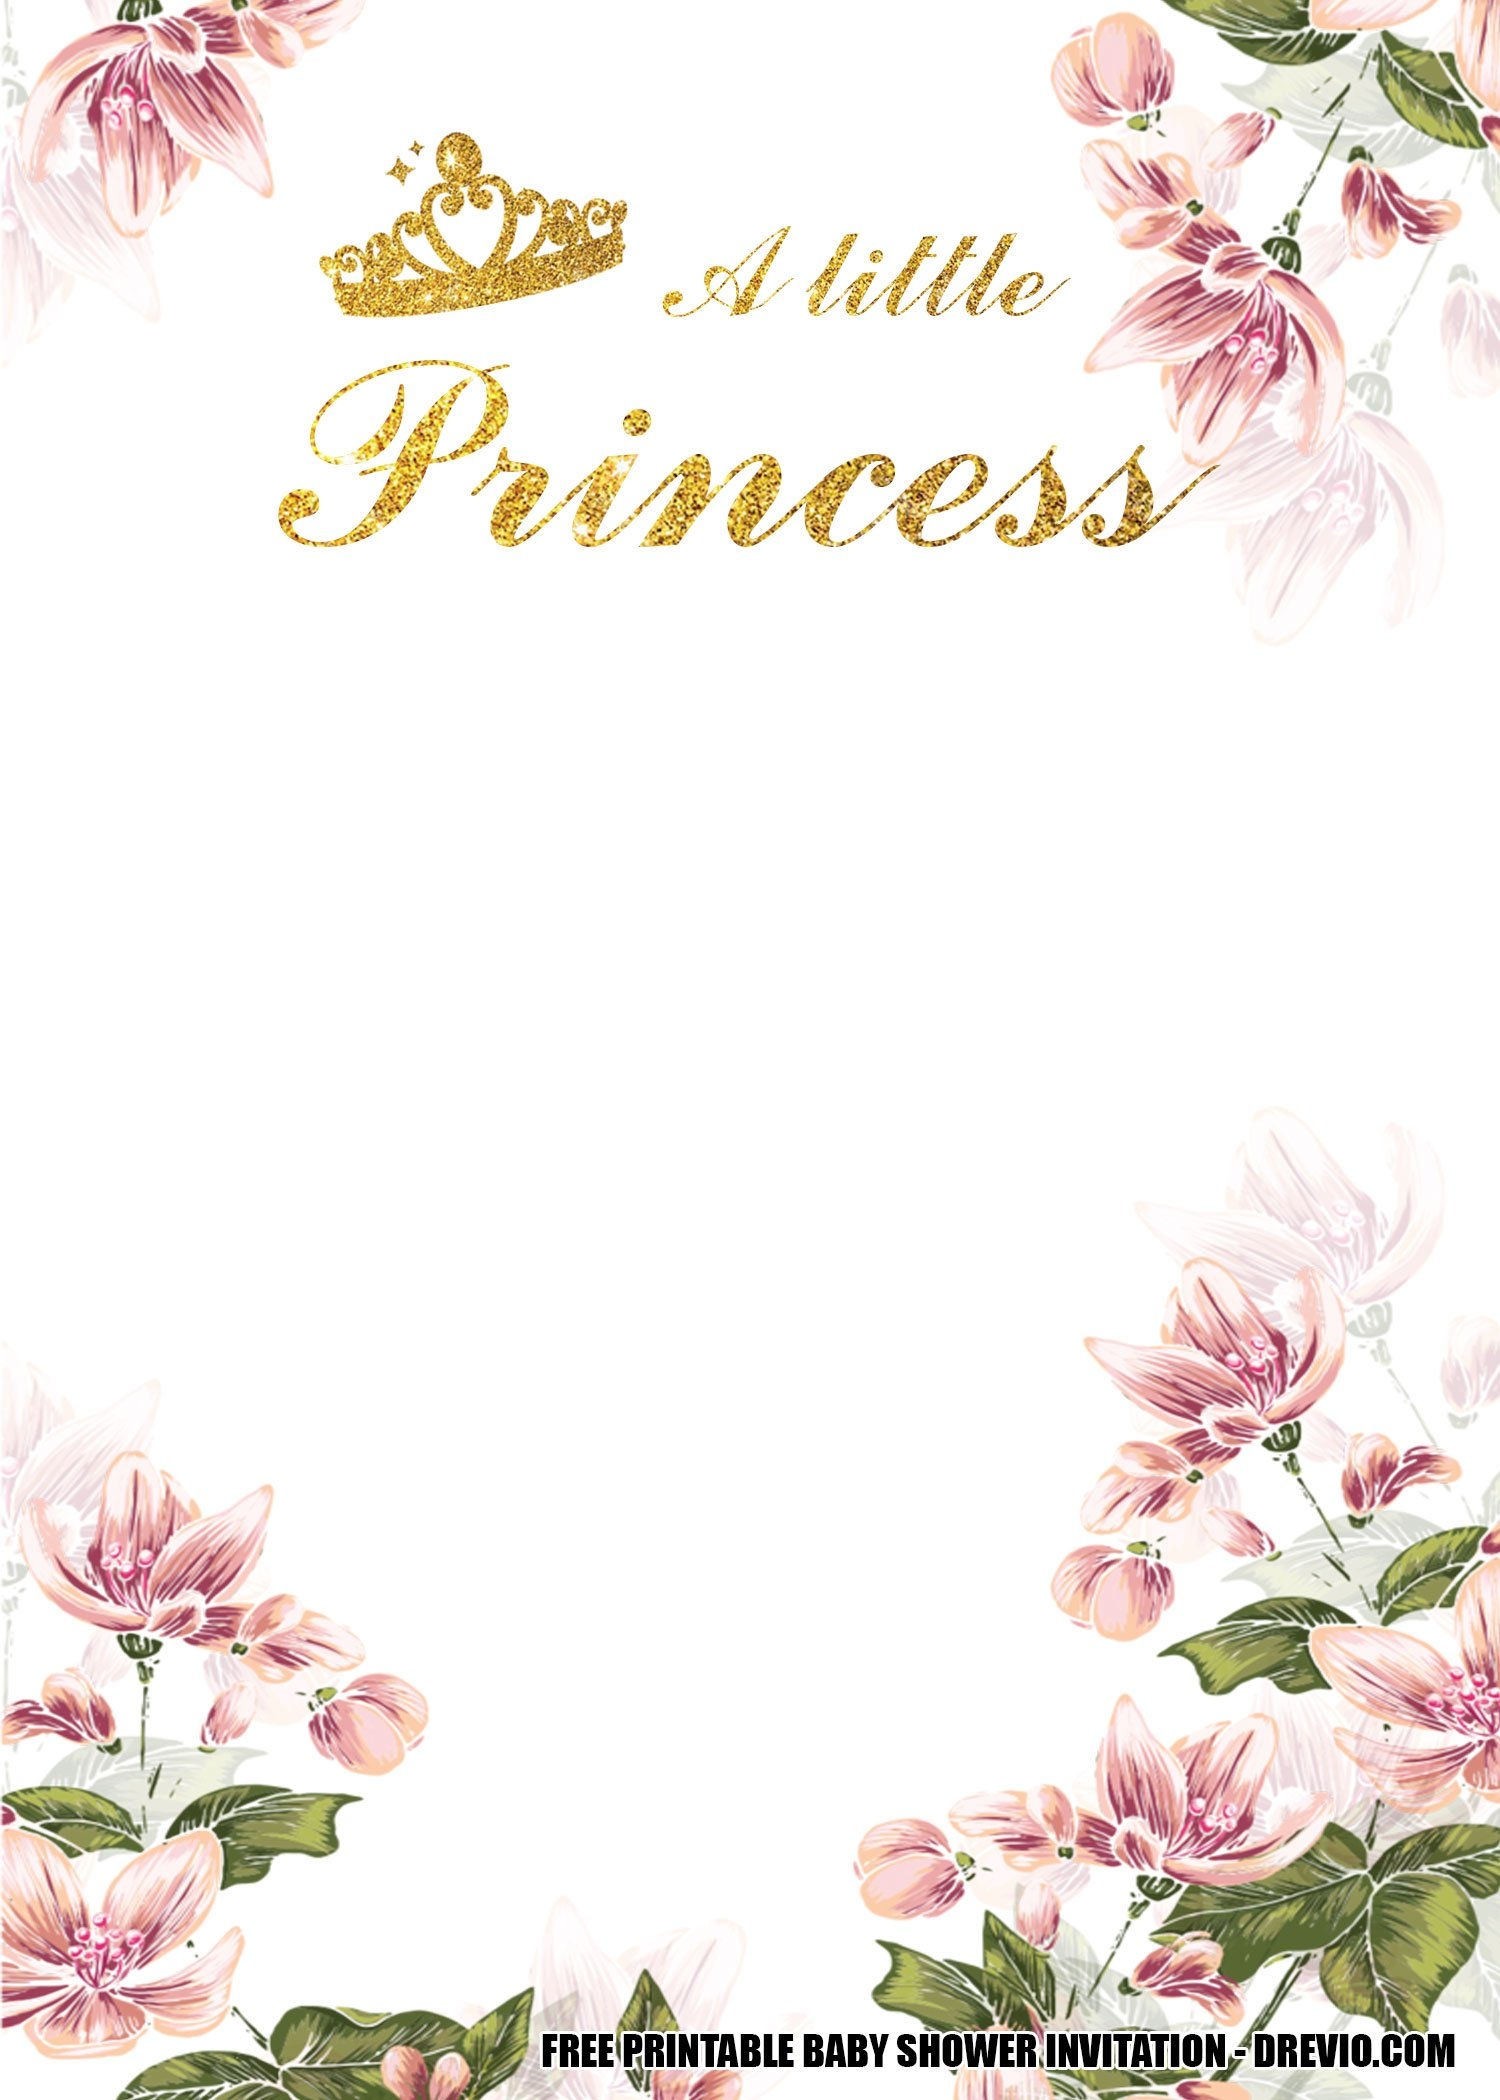 Awe Inspiring Free Floral Princess Baby Shower Get The Beautiful Invitation Personalised Birthday Cards Paralily Jamesorg